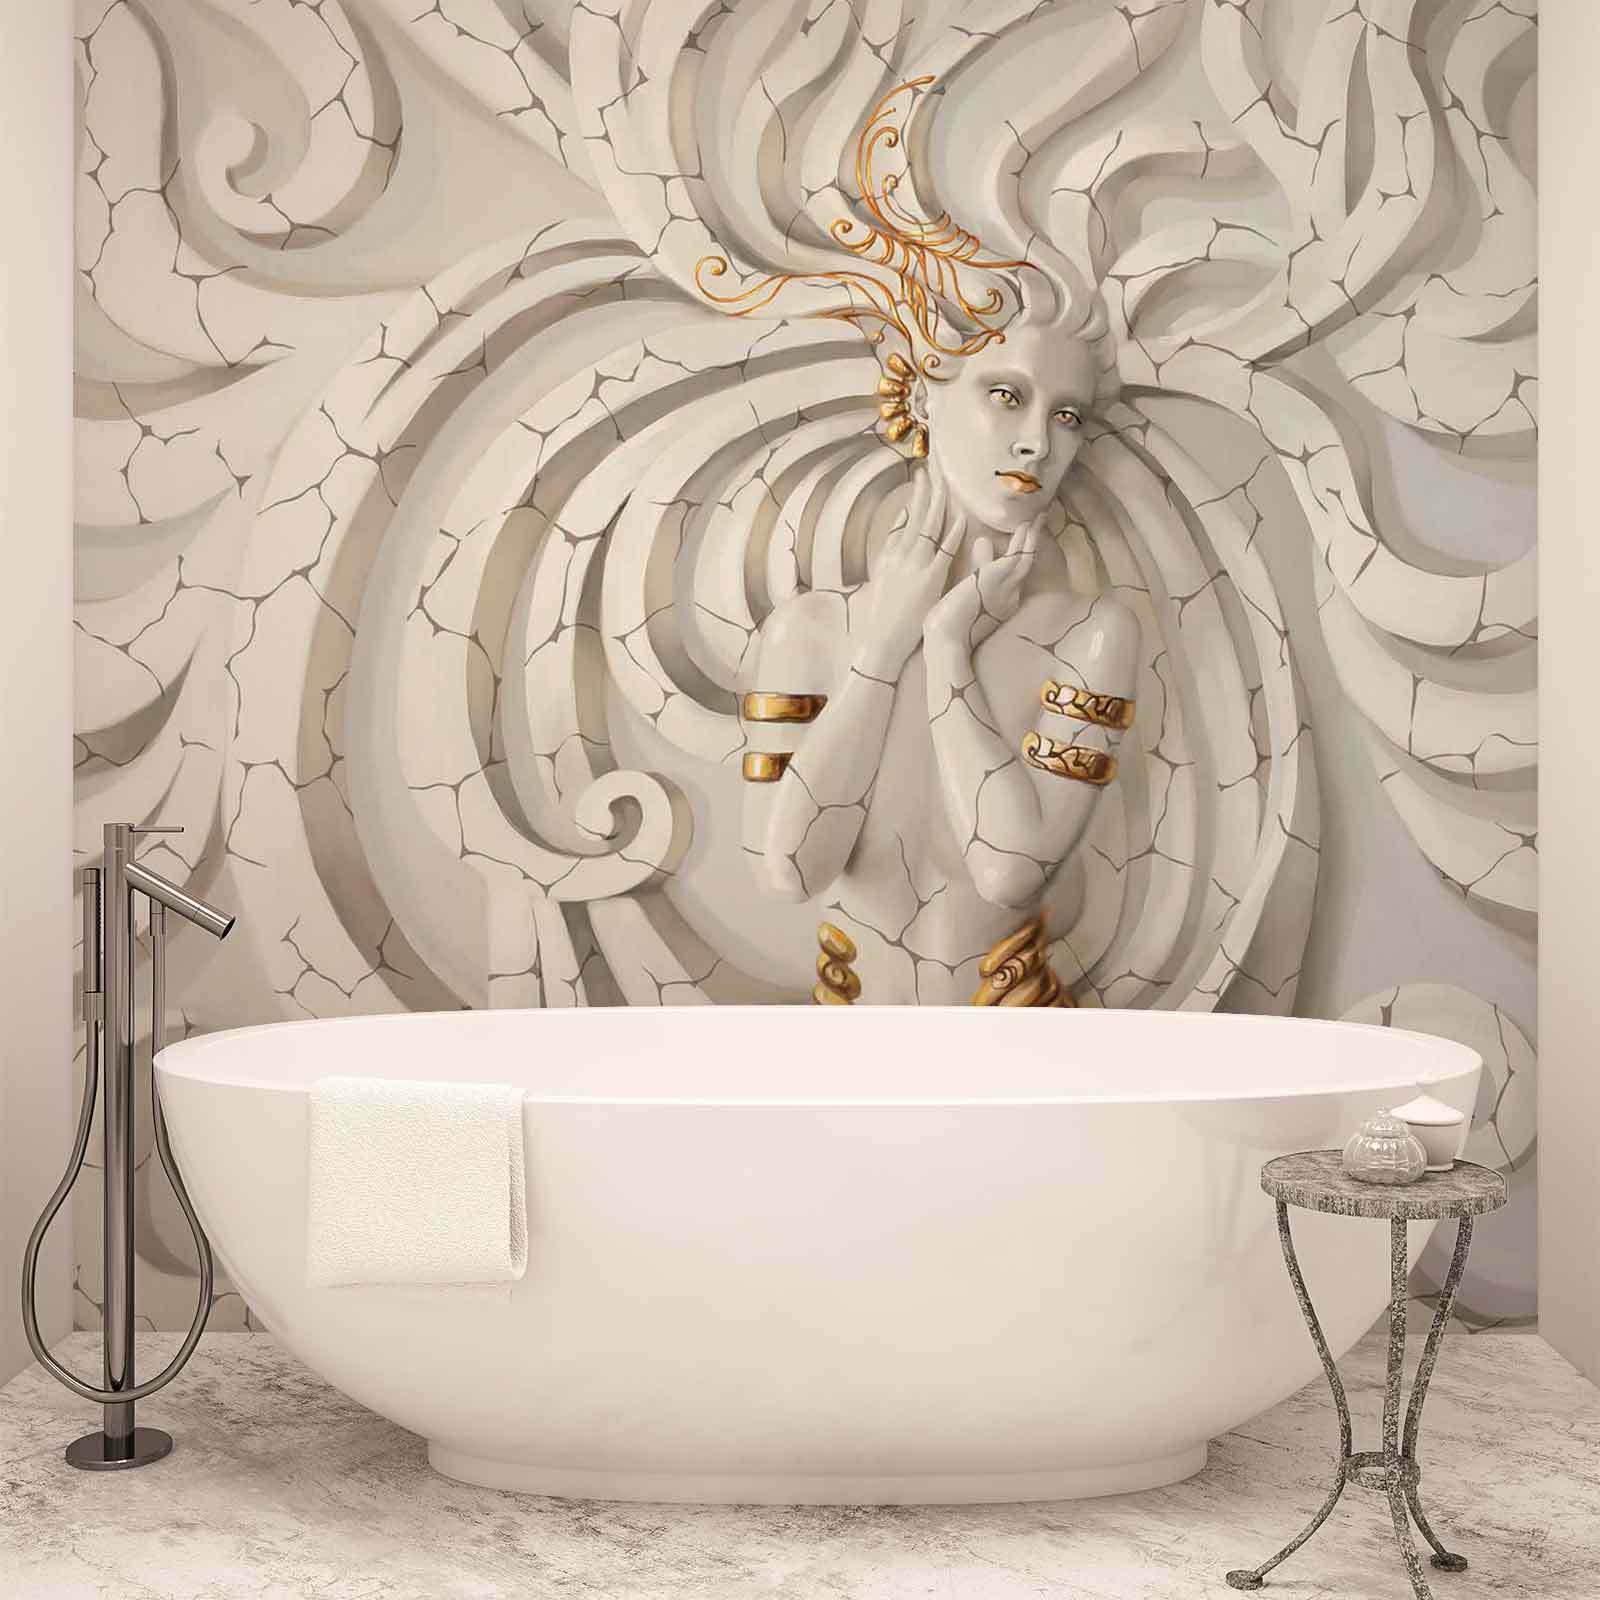 WALL MURAL PHOTO WALLPAPER XXL Medussa In Marble (3161WS)